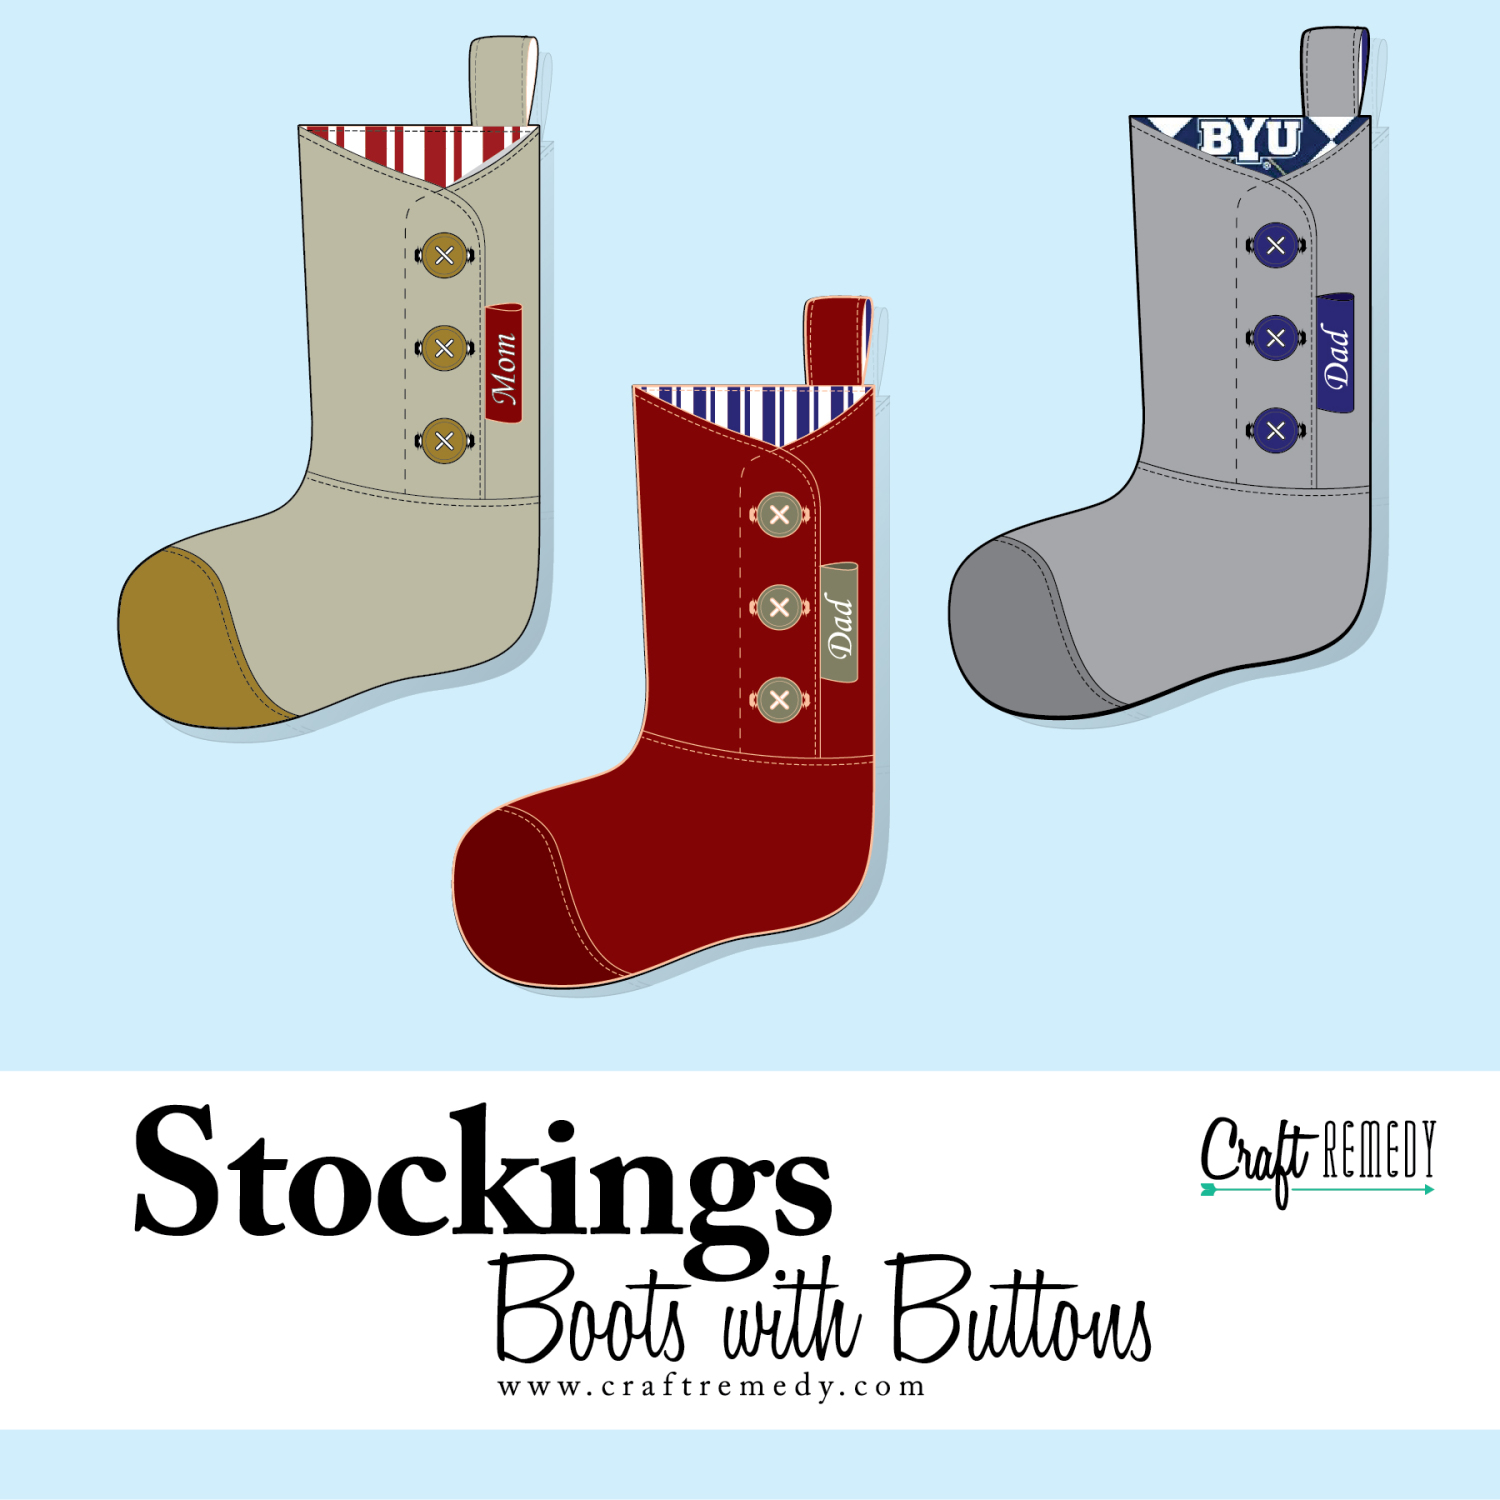 Craft-Remedy-Stocking2-01